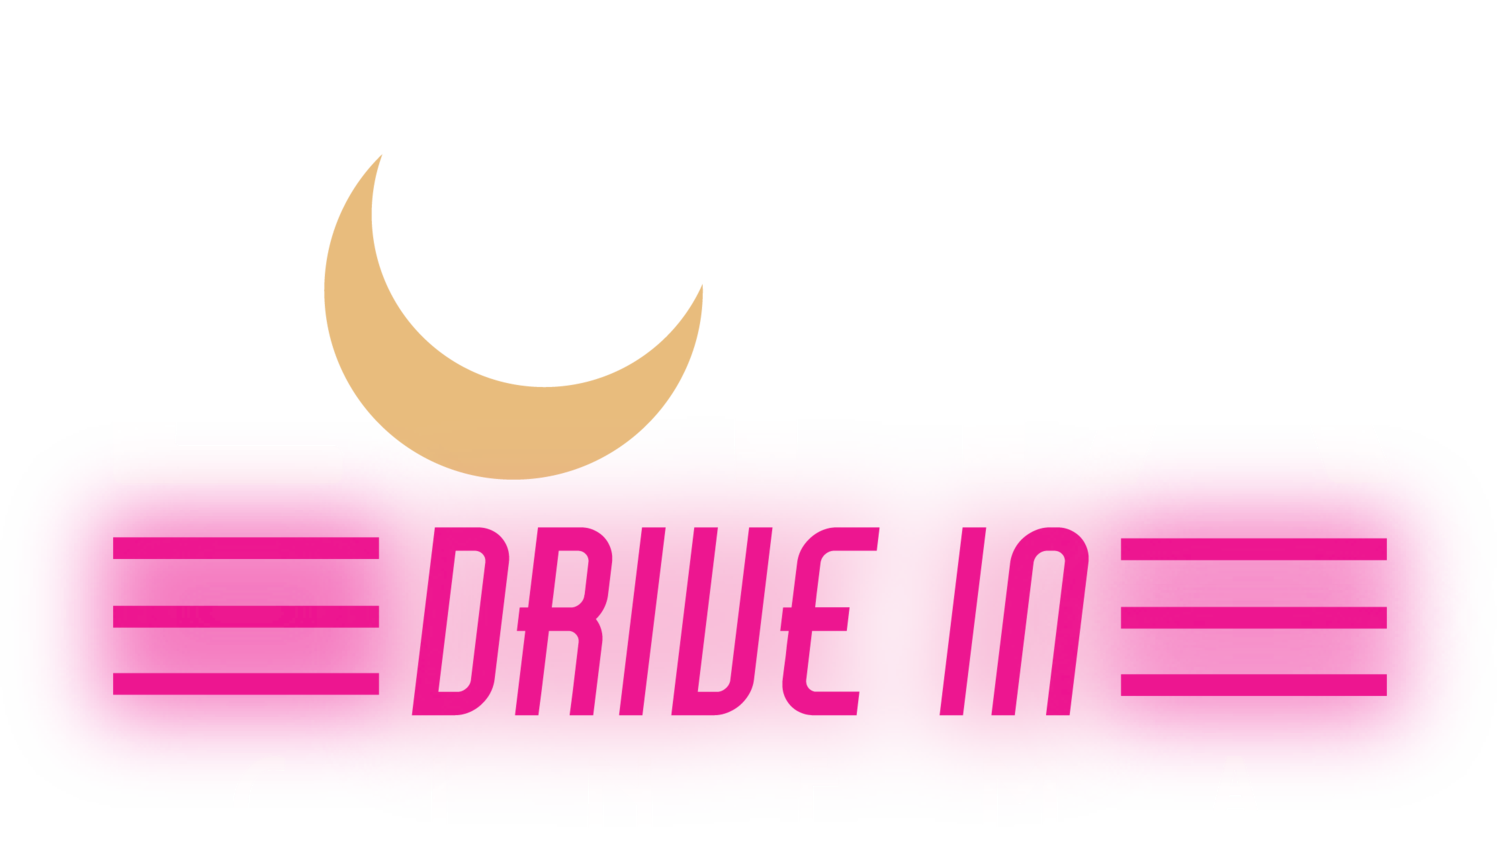 The Luna Drive In Cinema